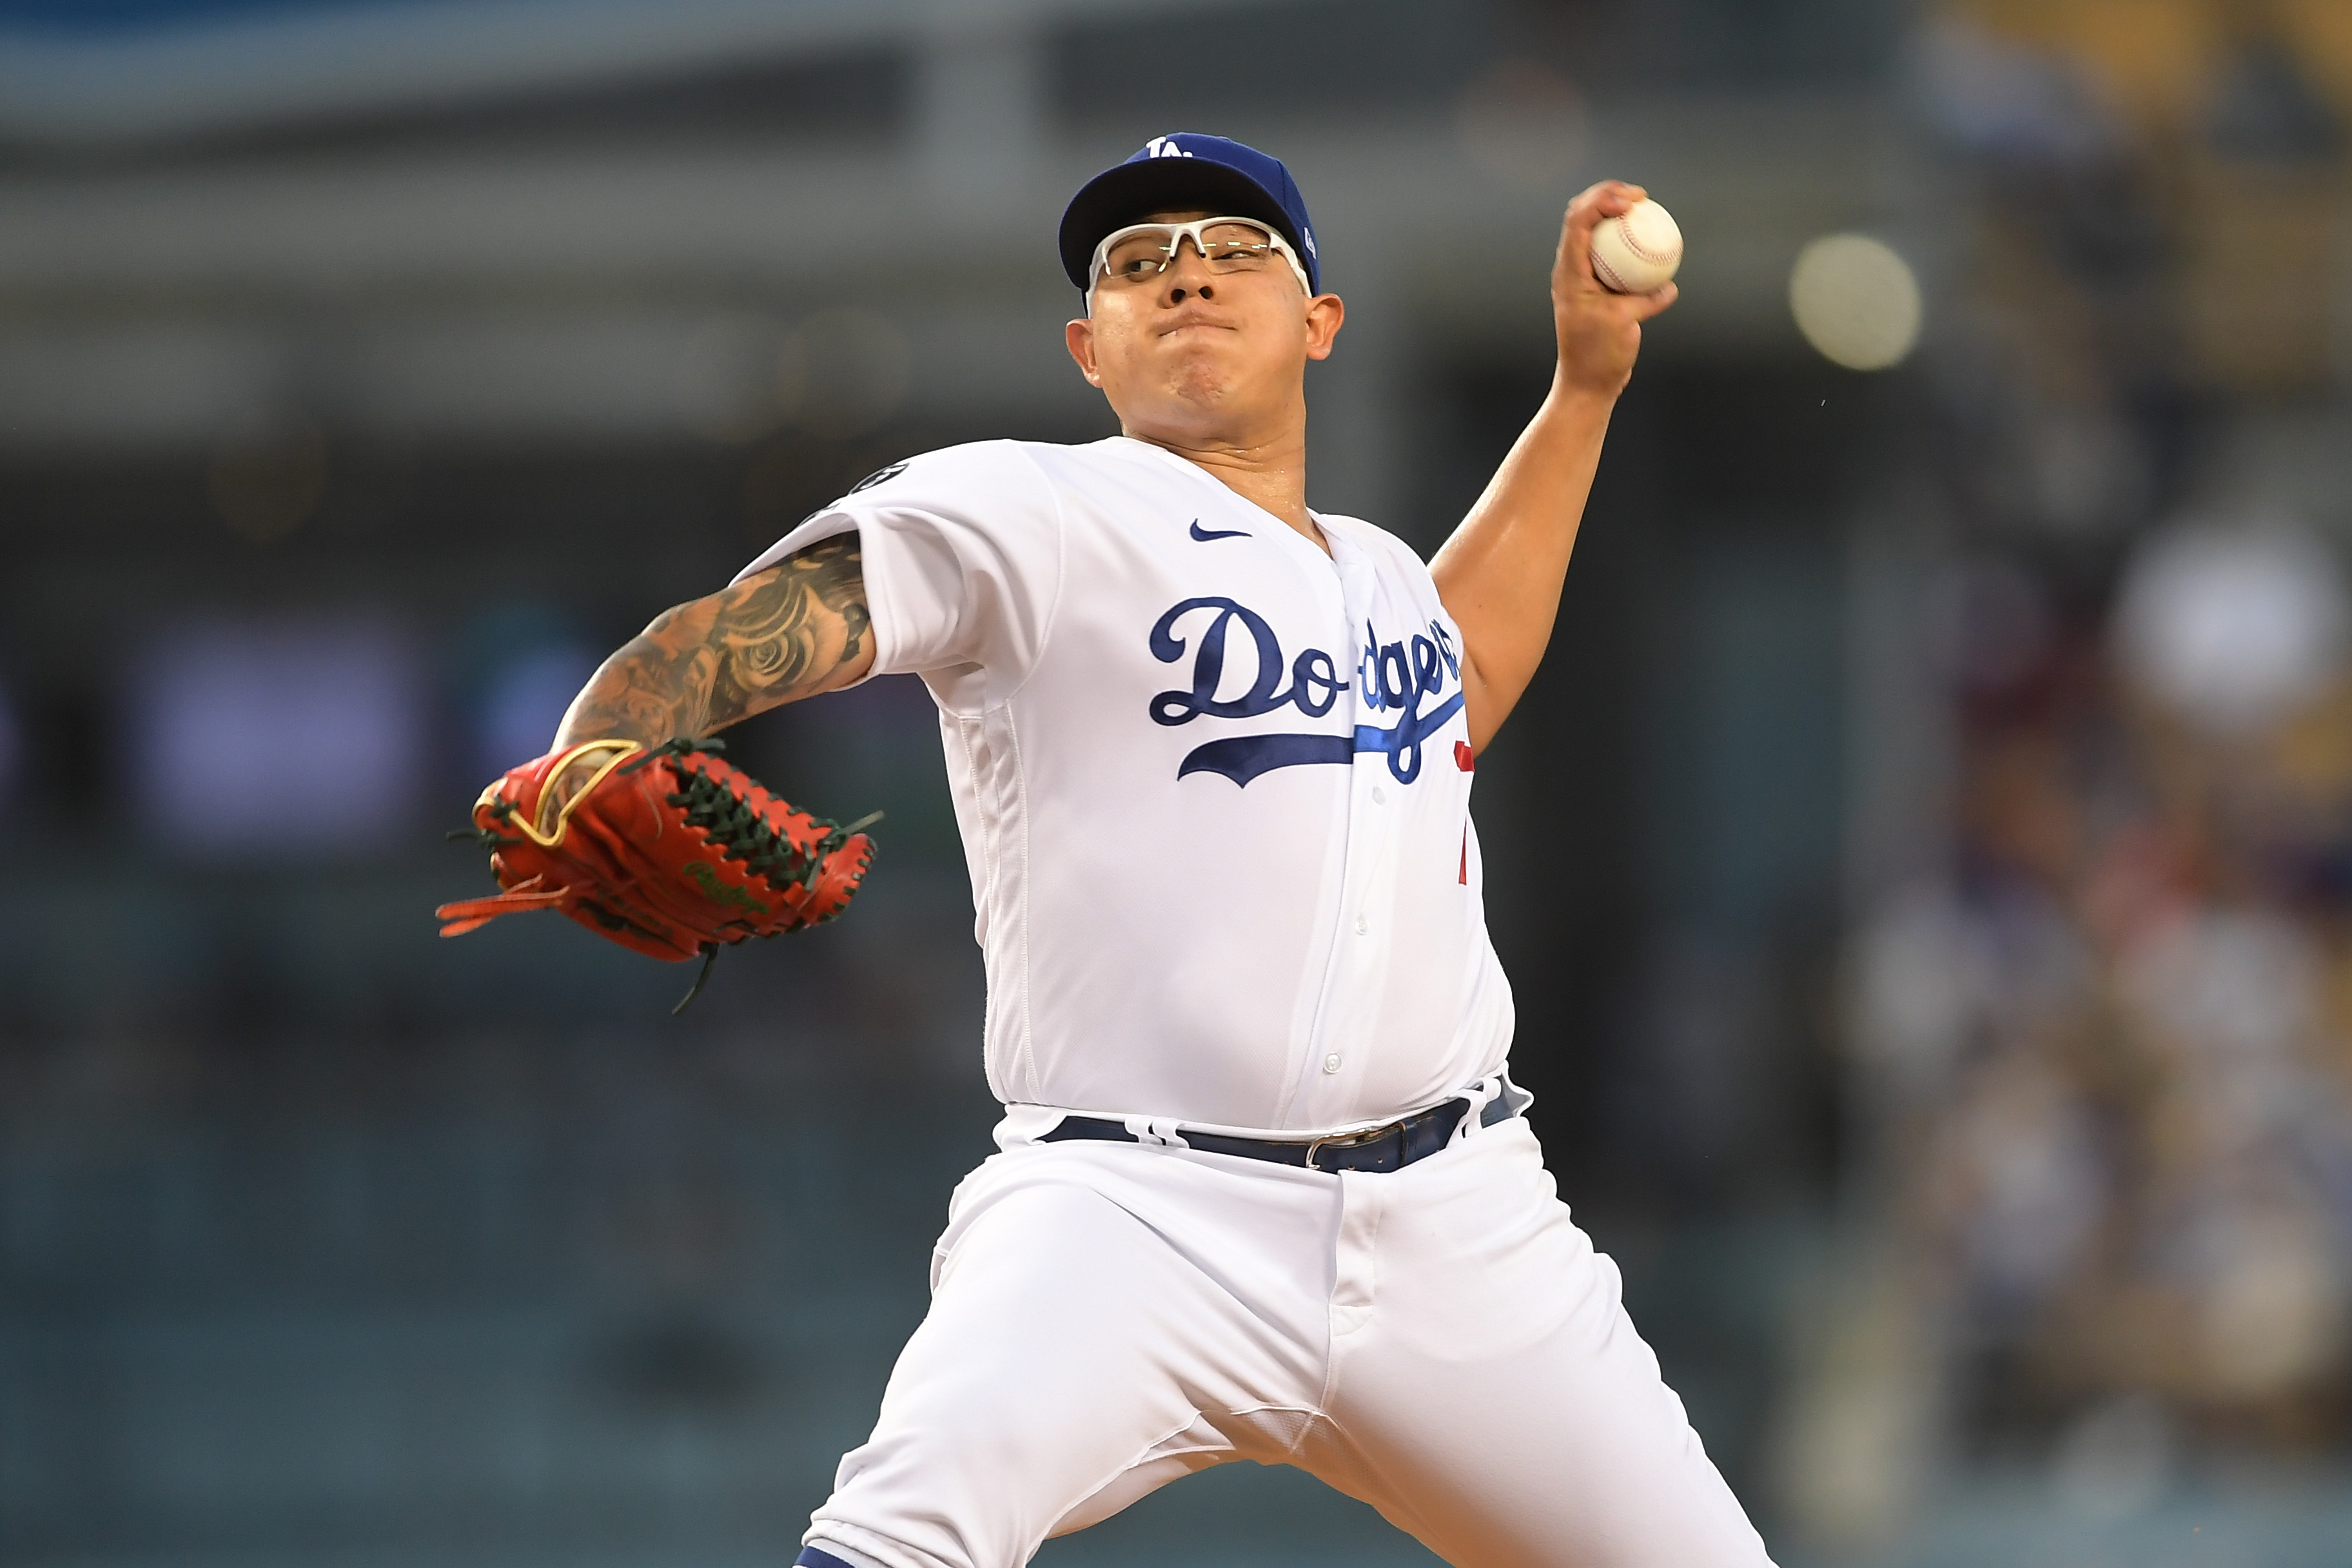 Los Angeles Dodgers starting pitcher Julio Urias (7) pitches in the first inning of the game against the Atlanta Braves at Dodger Stadium.